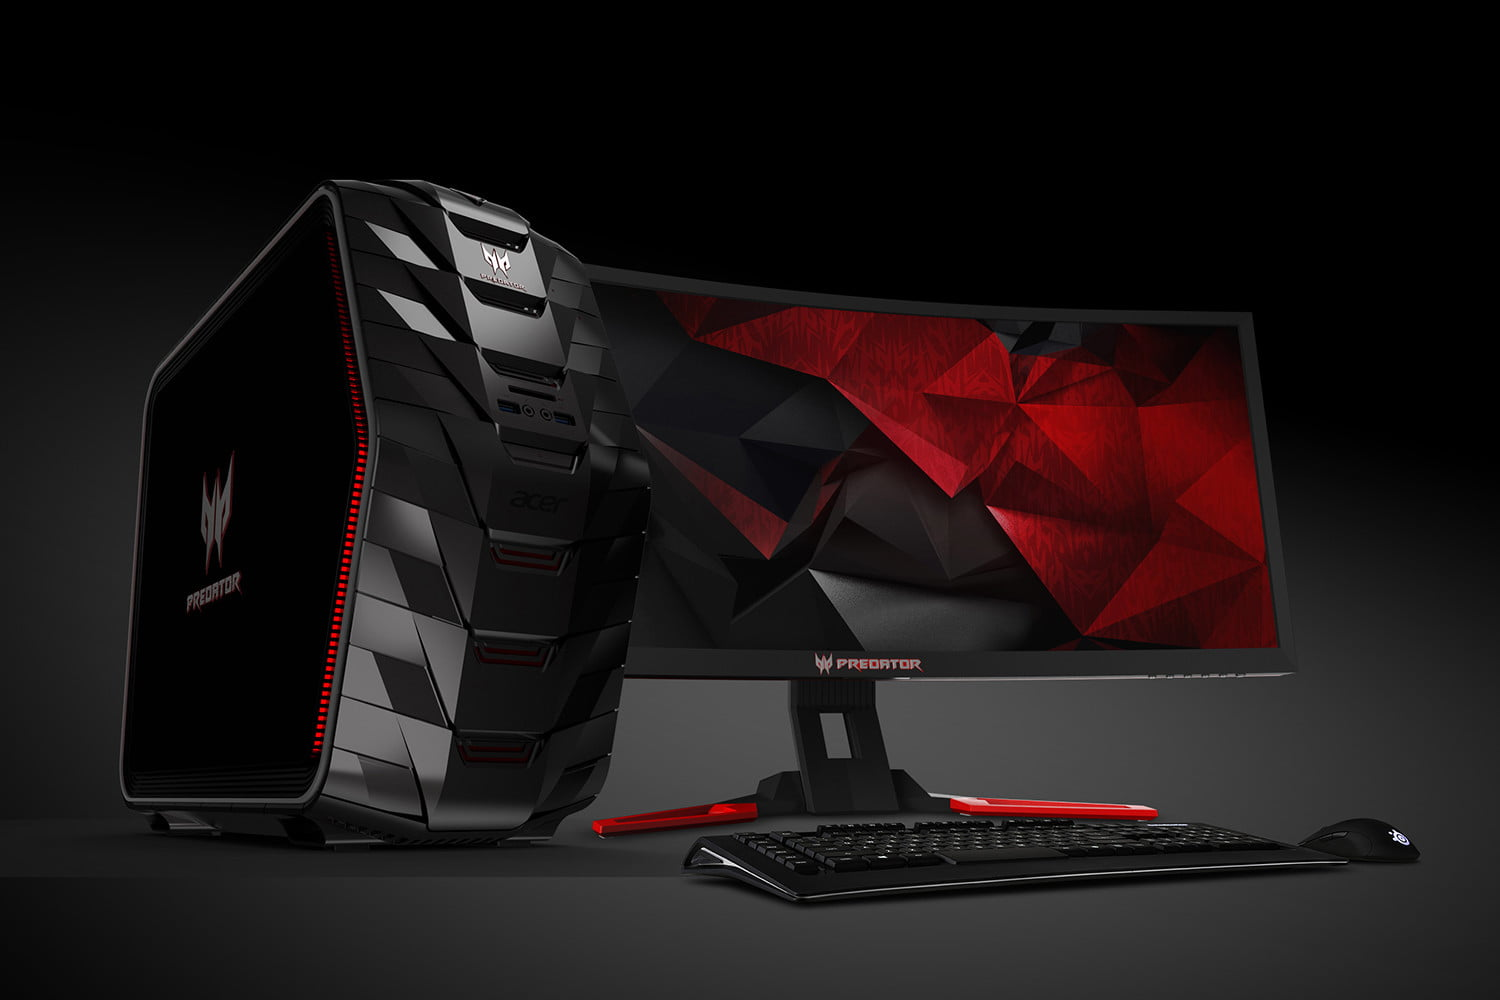 Acer Shows Predator Line Up At IFA 2015